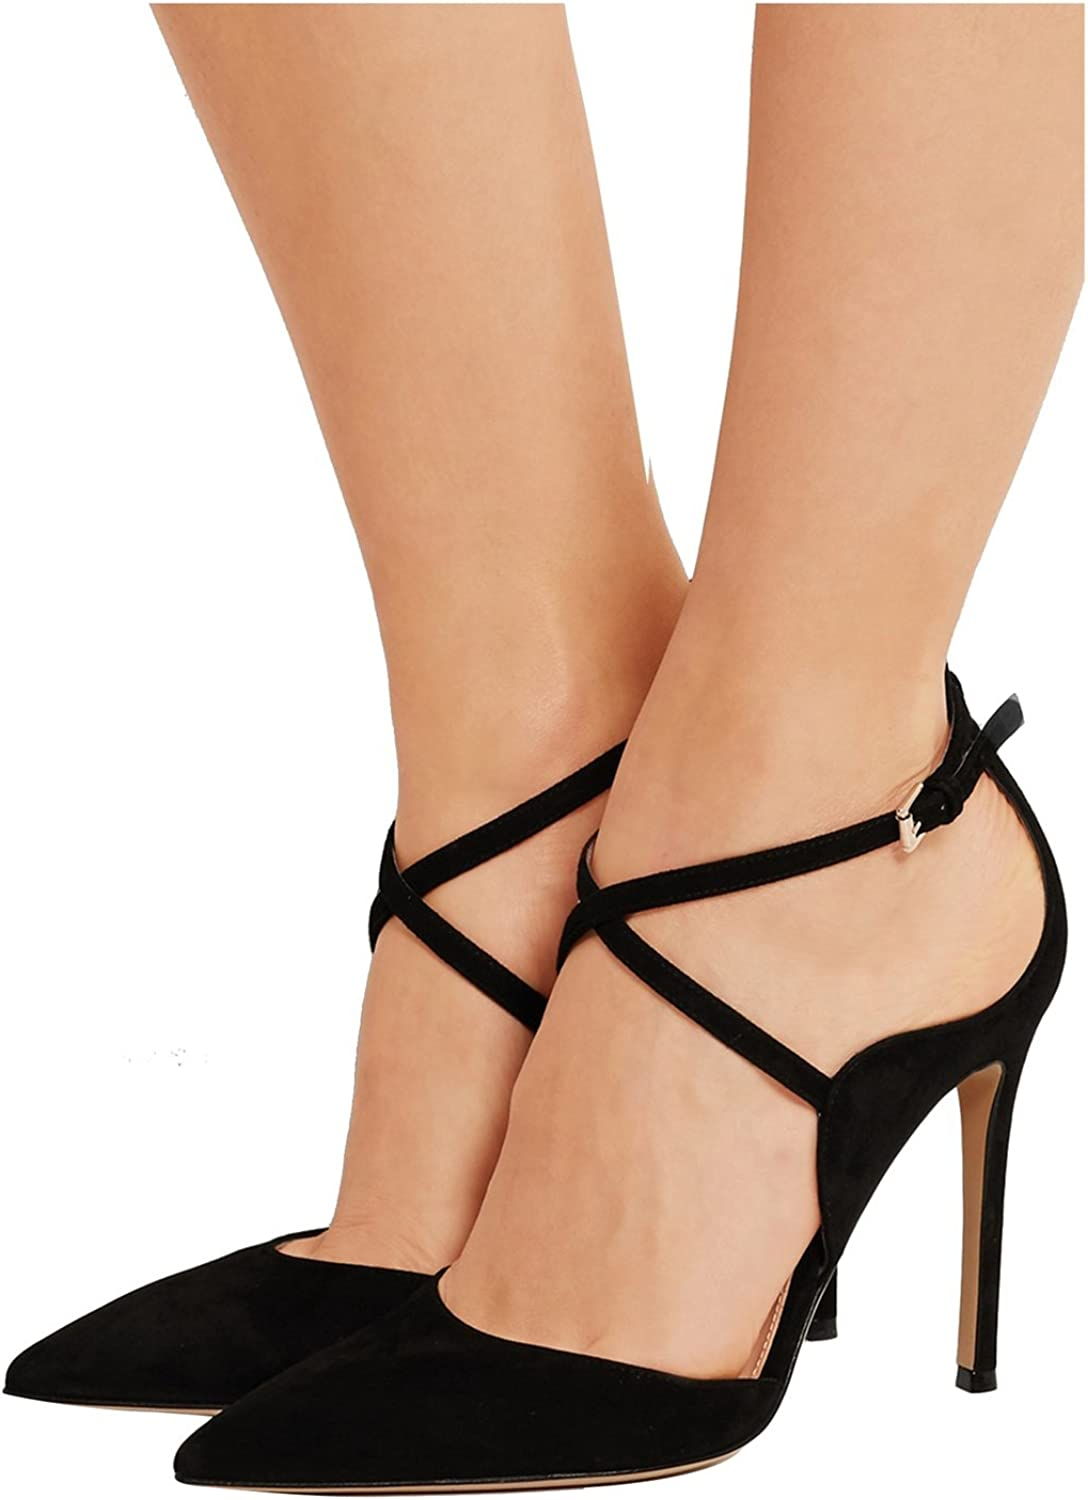 Kevin Fashion KLSDN199 Women's Pointed Toe Suede Club Party Evening Pumps shoes